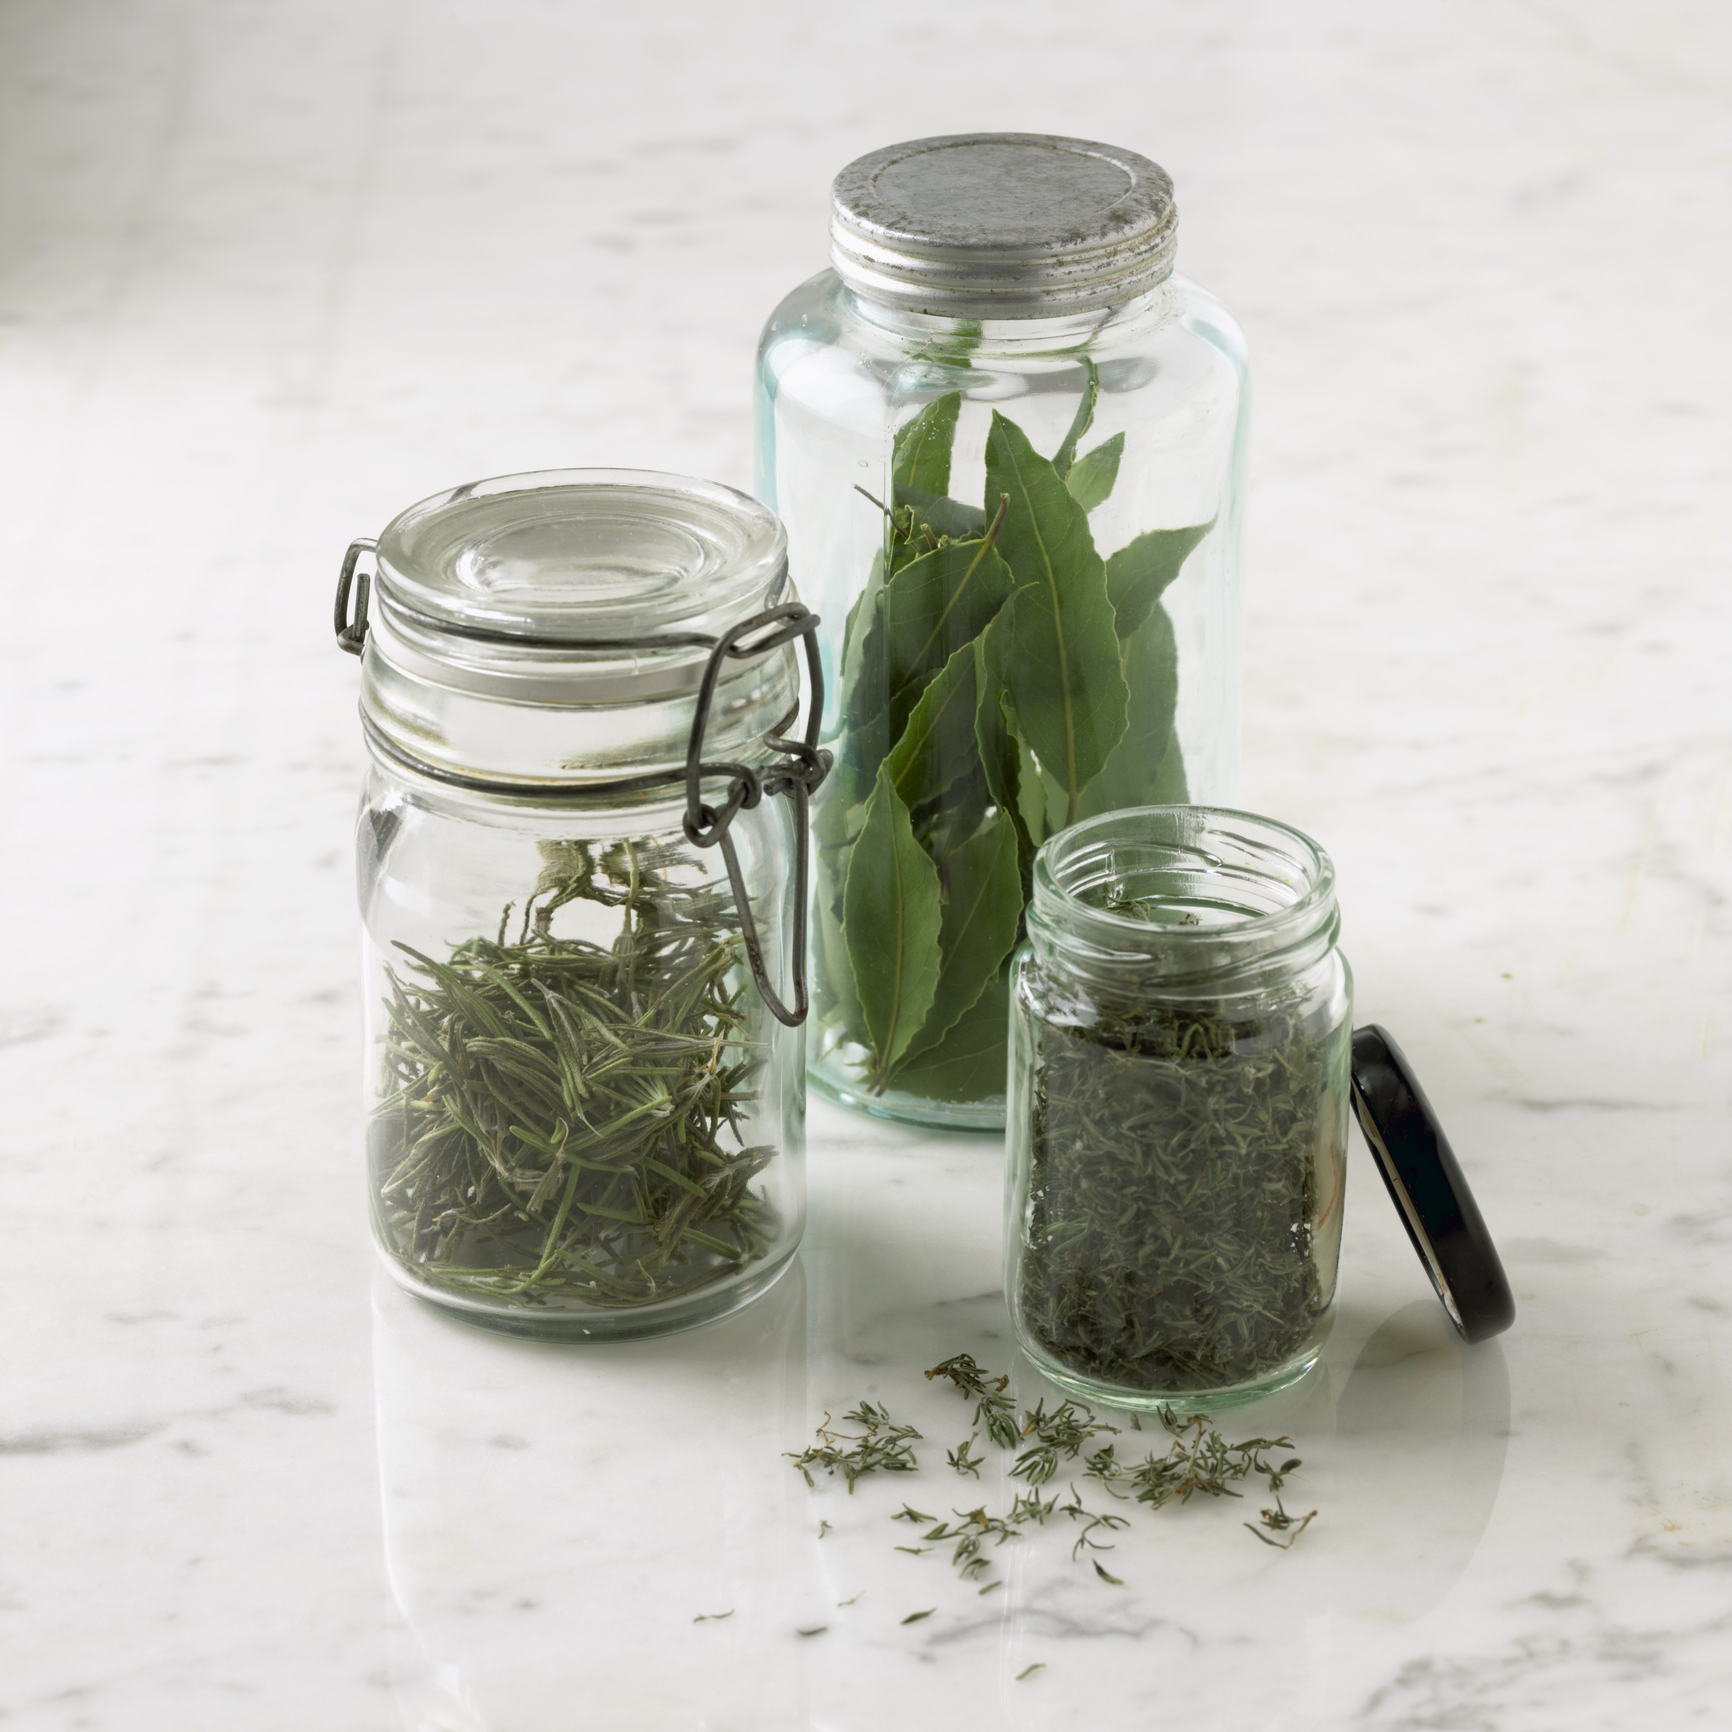 Dry fresh herbs in the microwave and keep them in an airtight jar. Photo credit: William Reavell / Getty Images.